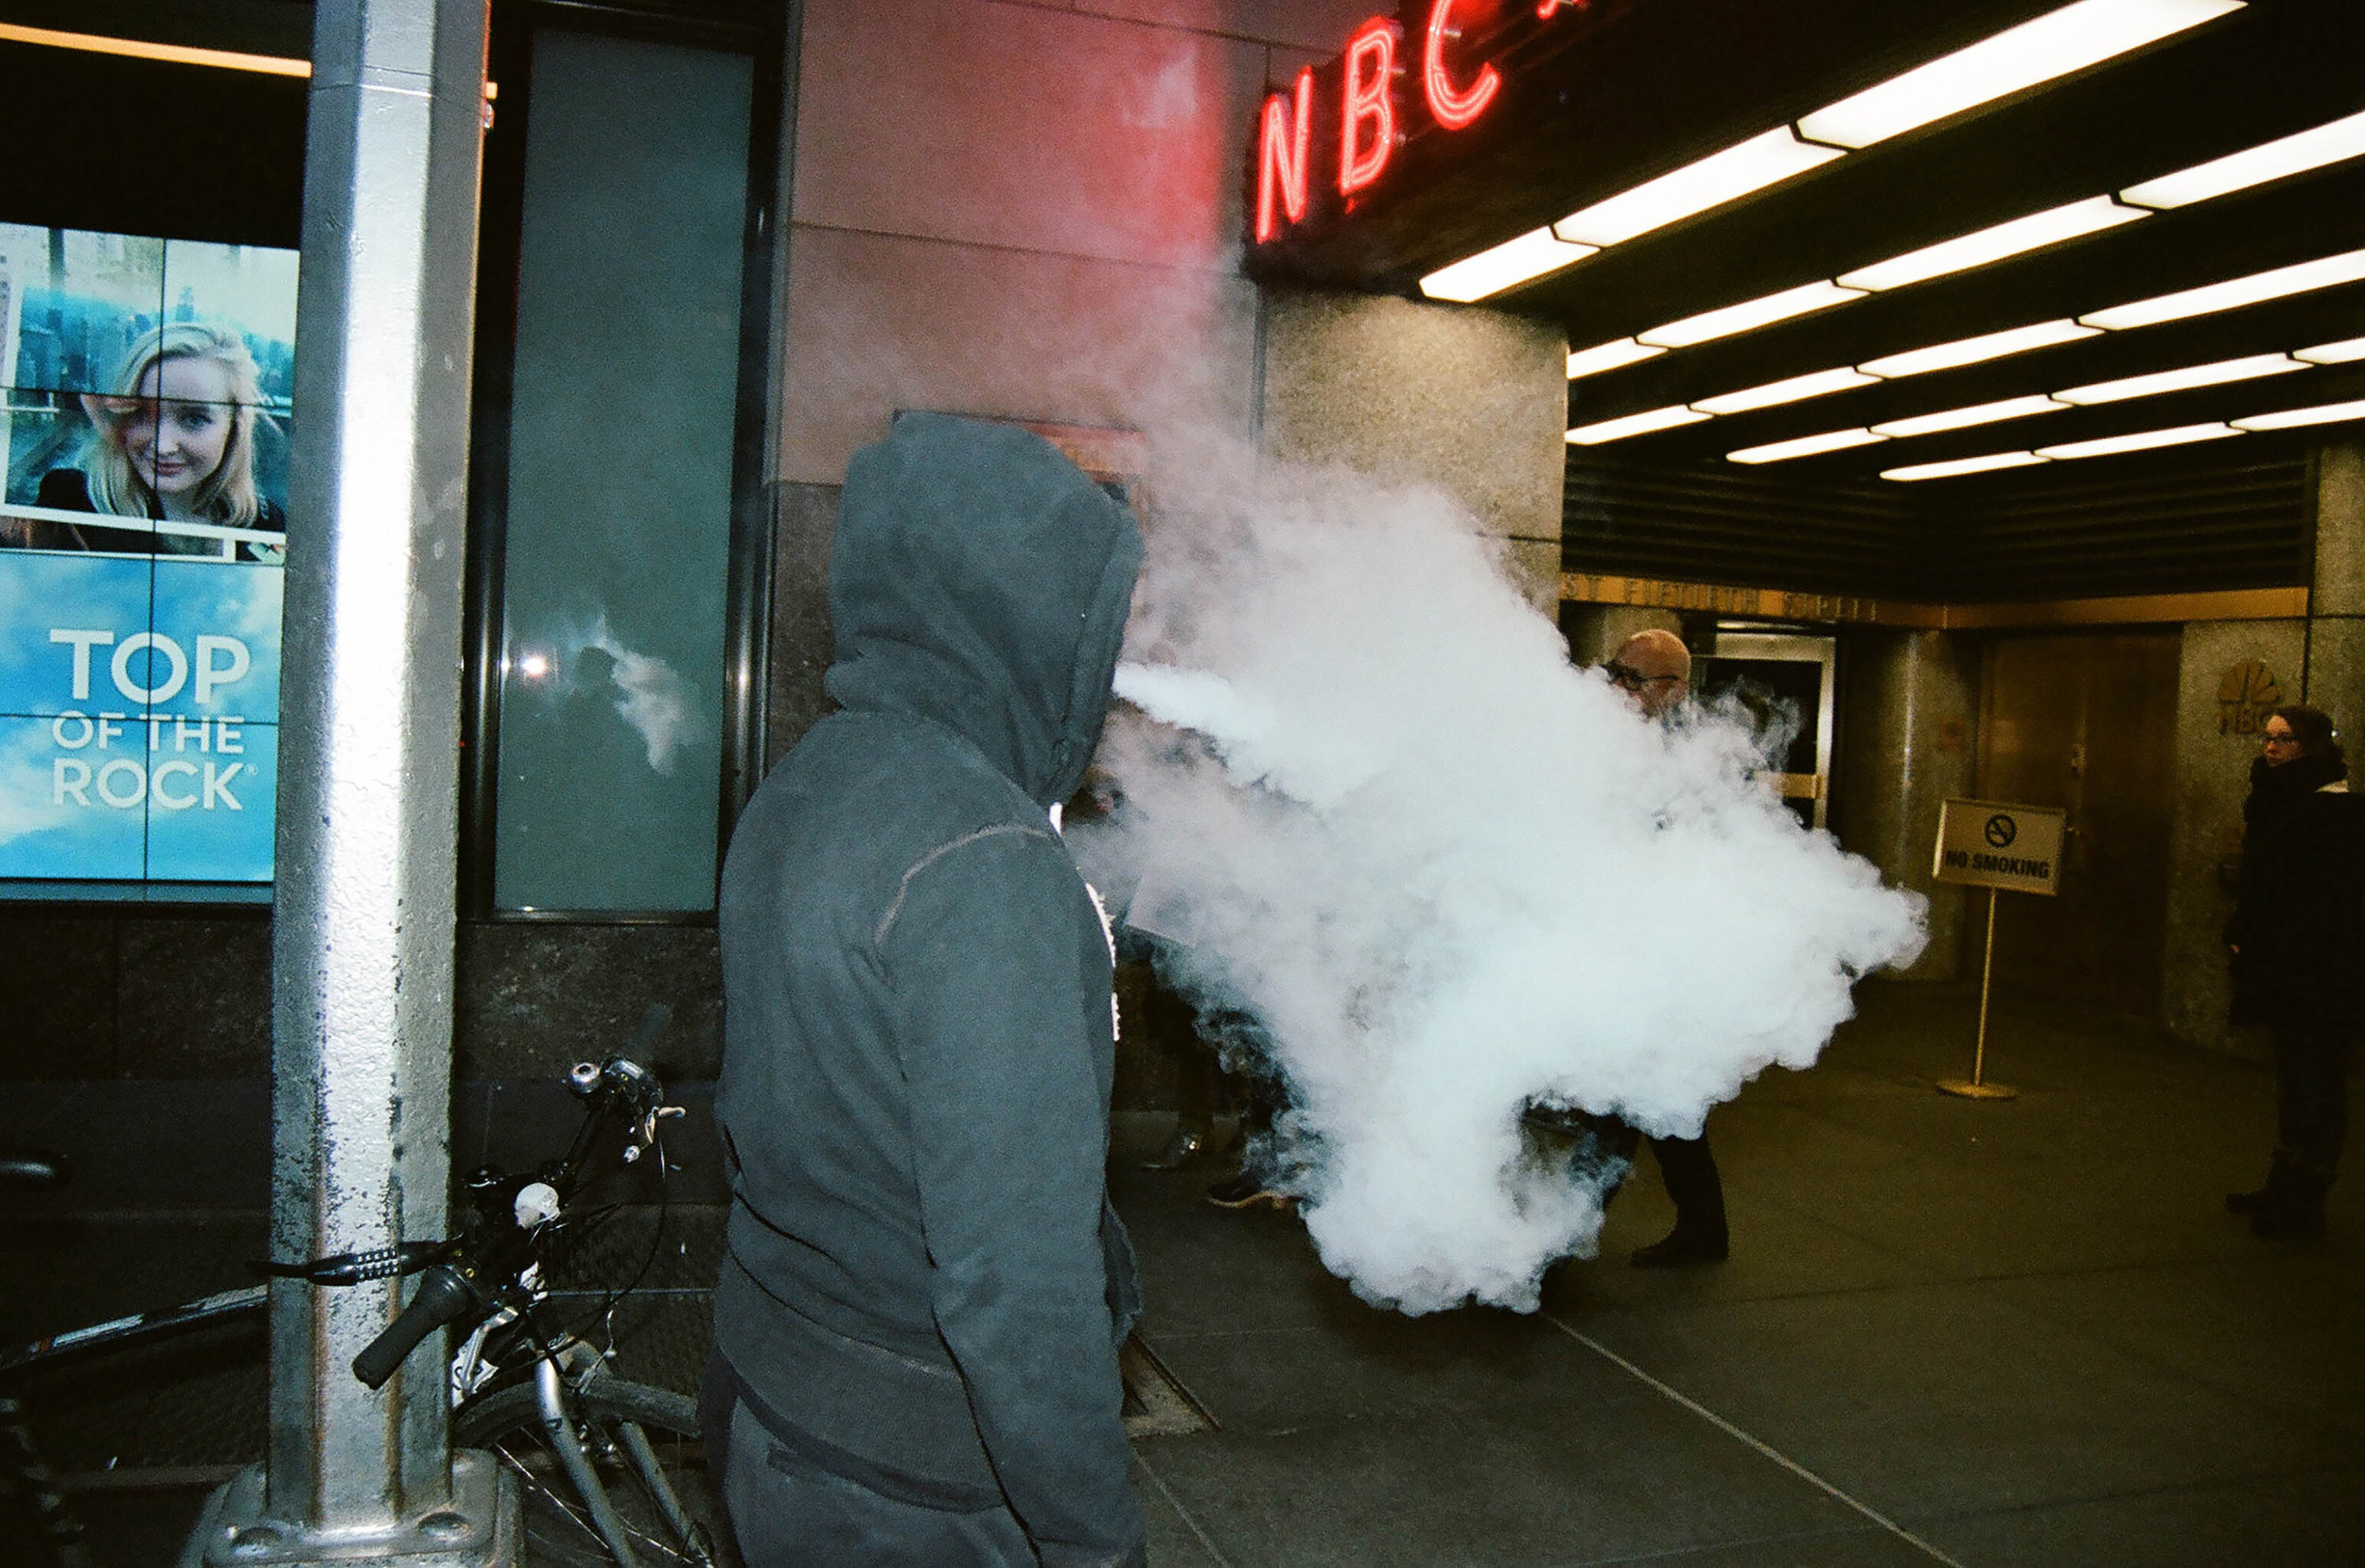 new-york-city-street-photographer-Steven-Davis-4